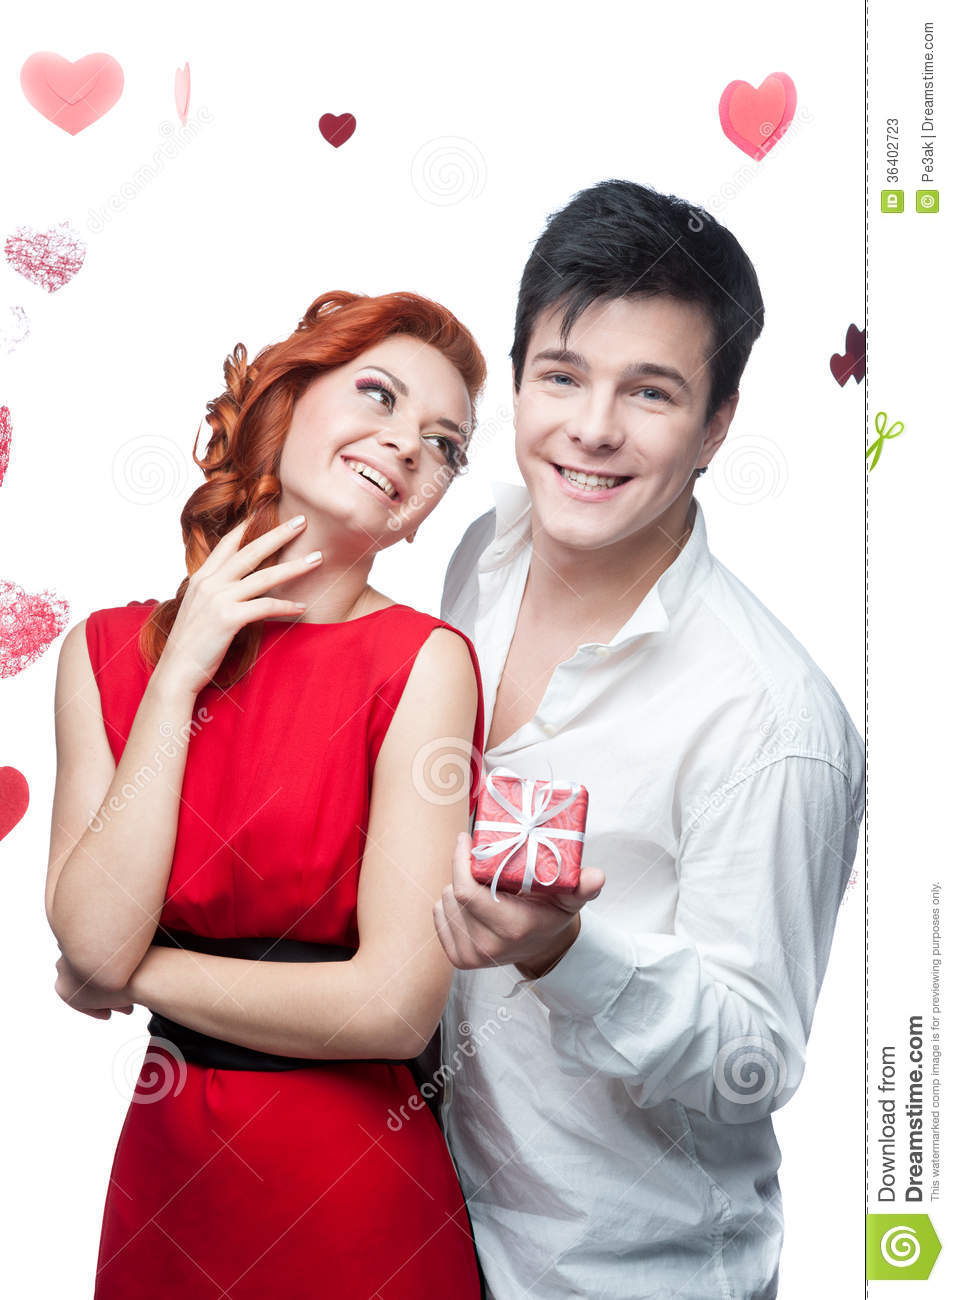 Young Smiling Couple On Valentines Day Stock Image Image Of Glad